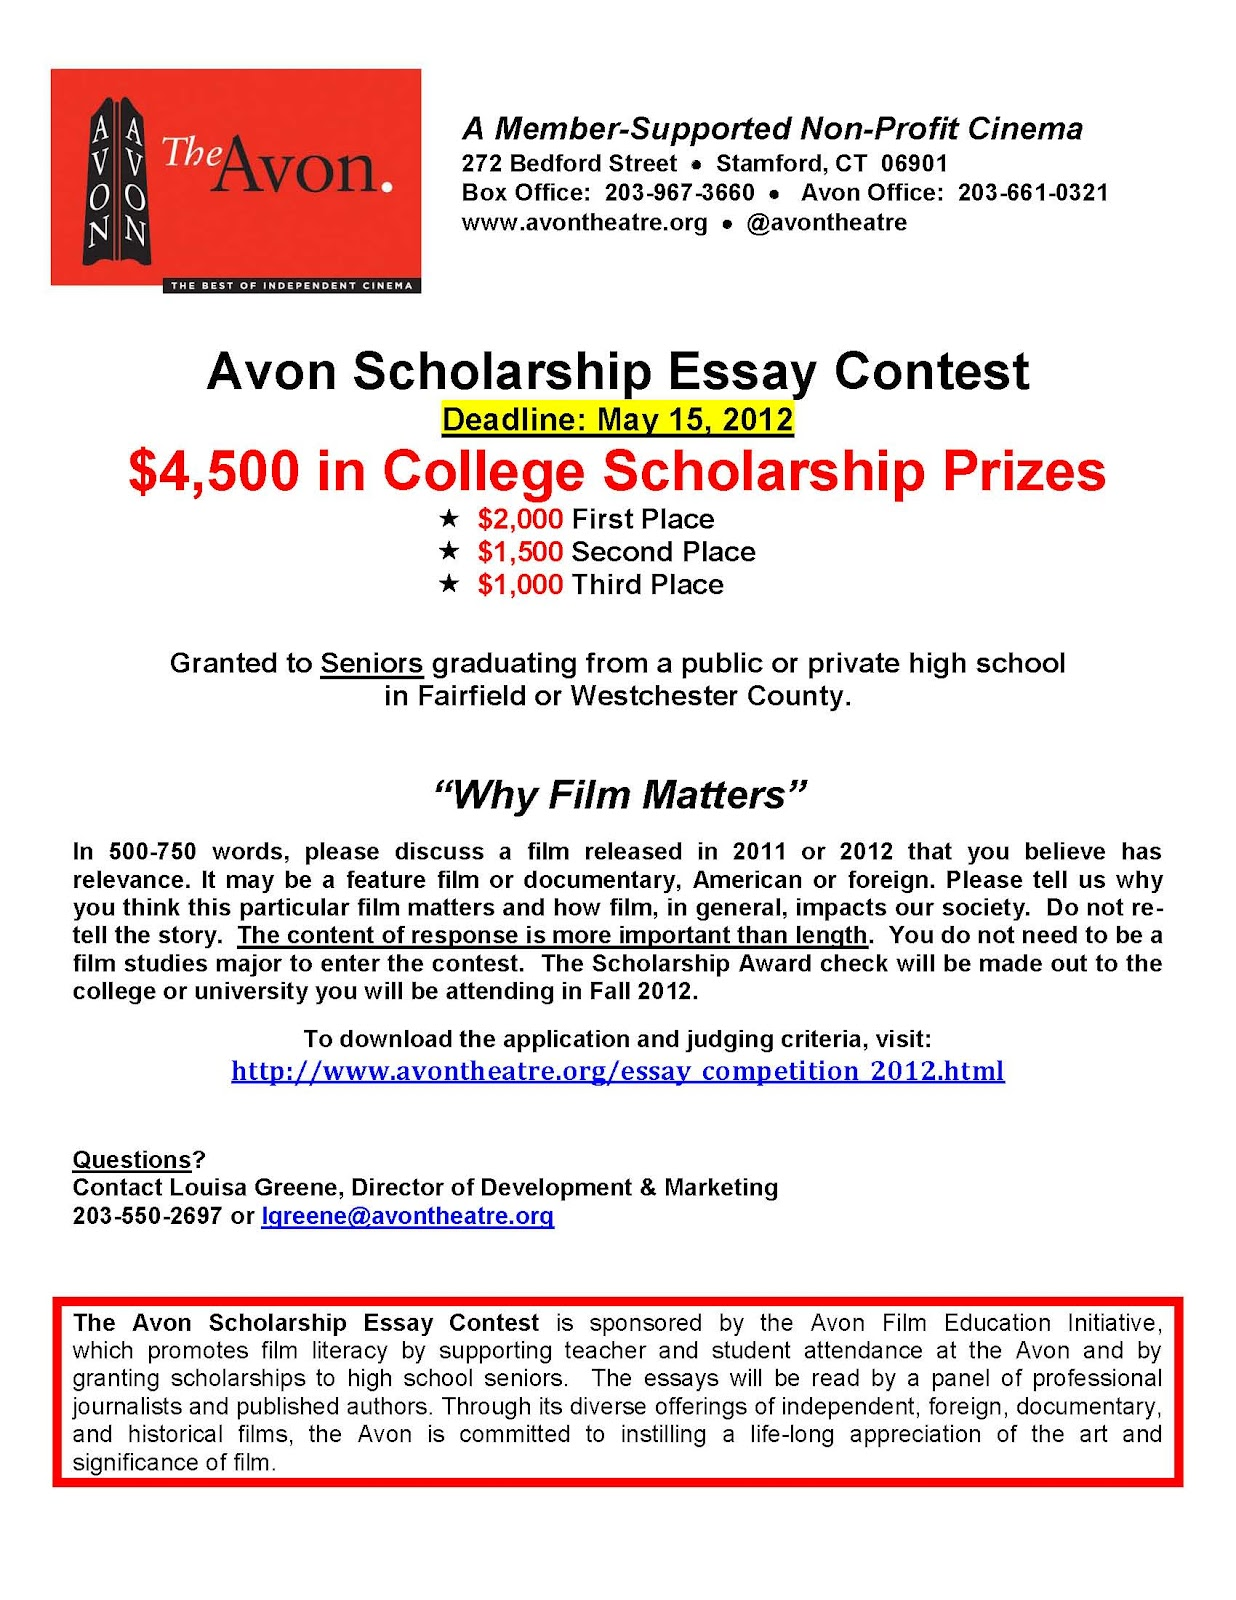 002 Essay Example No Scholarships College Scholarship Prowler Free For High School Seniors Avonscholarshipessaycontest2012 In Texas California Class Of Short Exceptional Undergraduates Students 2019 Full